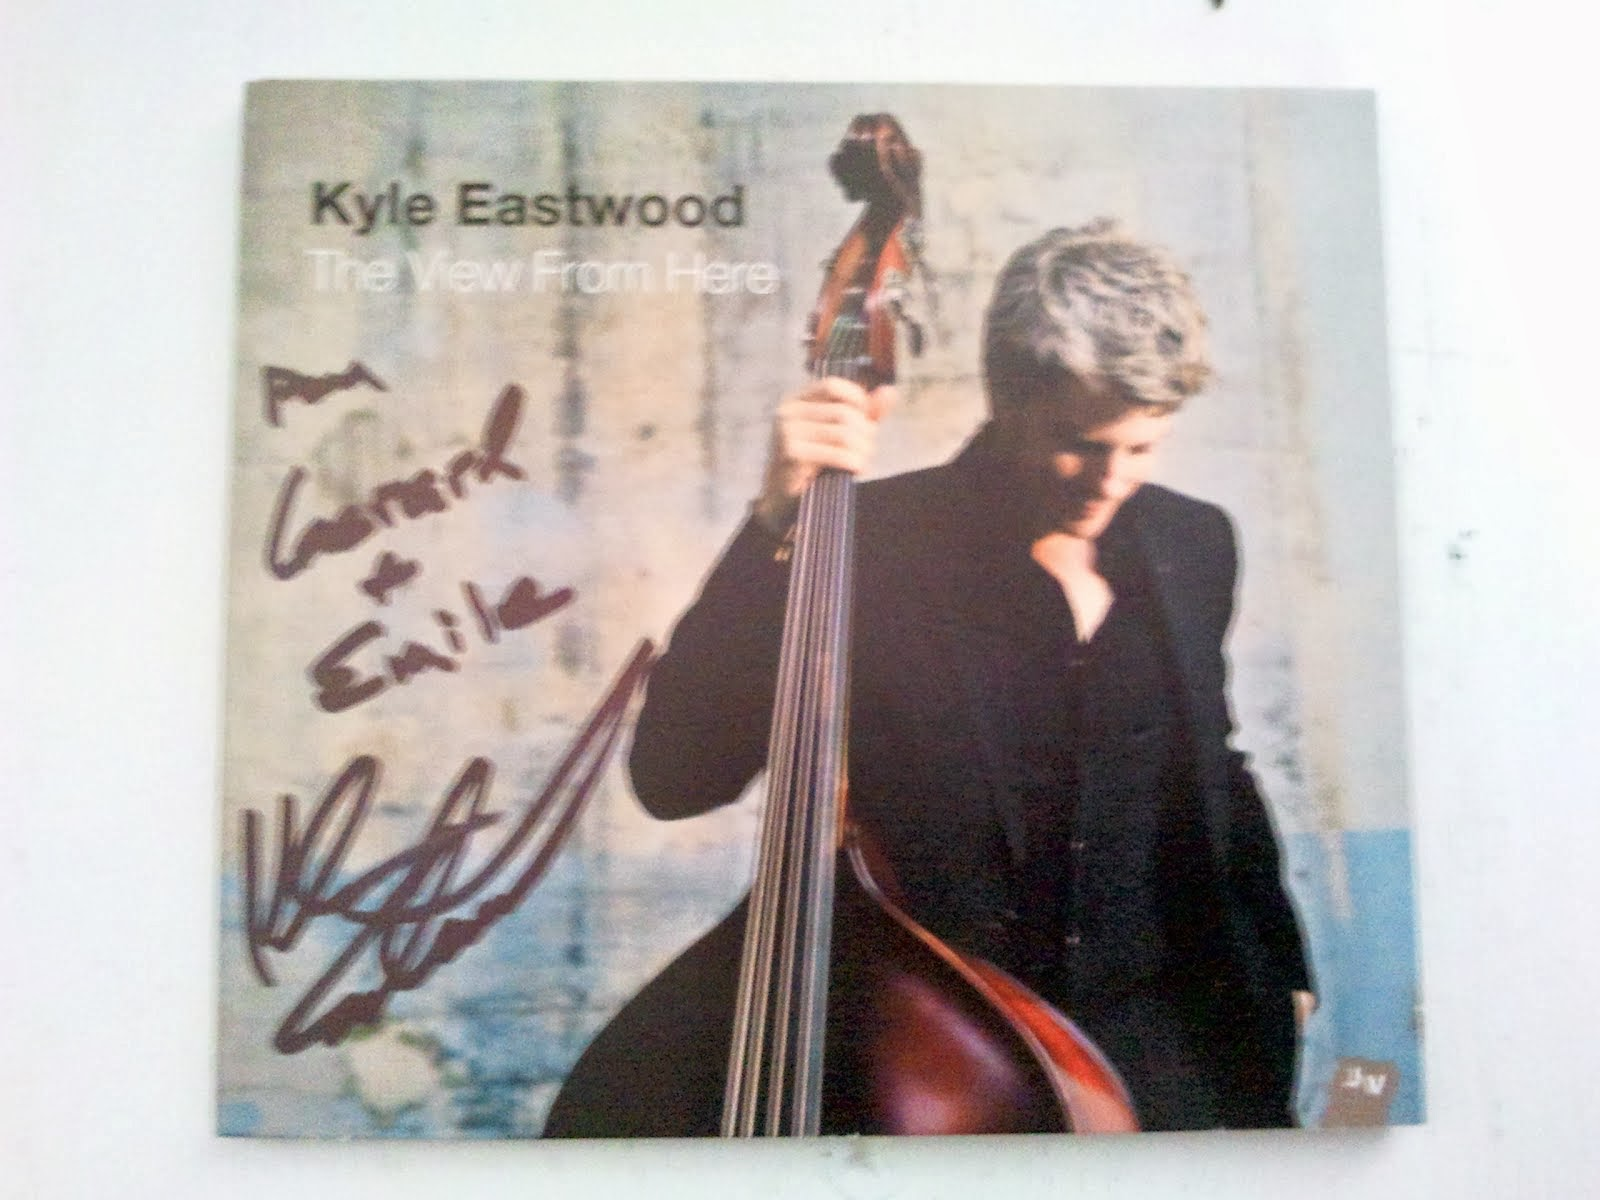 Kyle Eastwood /The View From Here